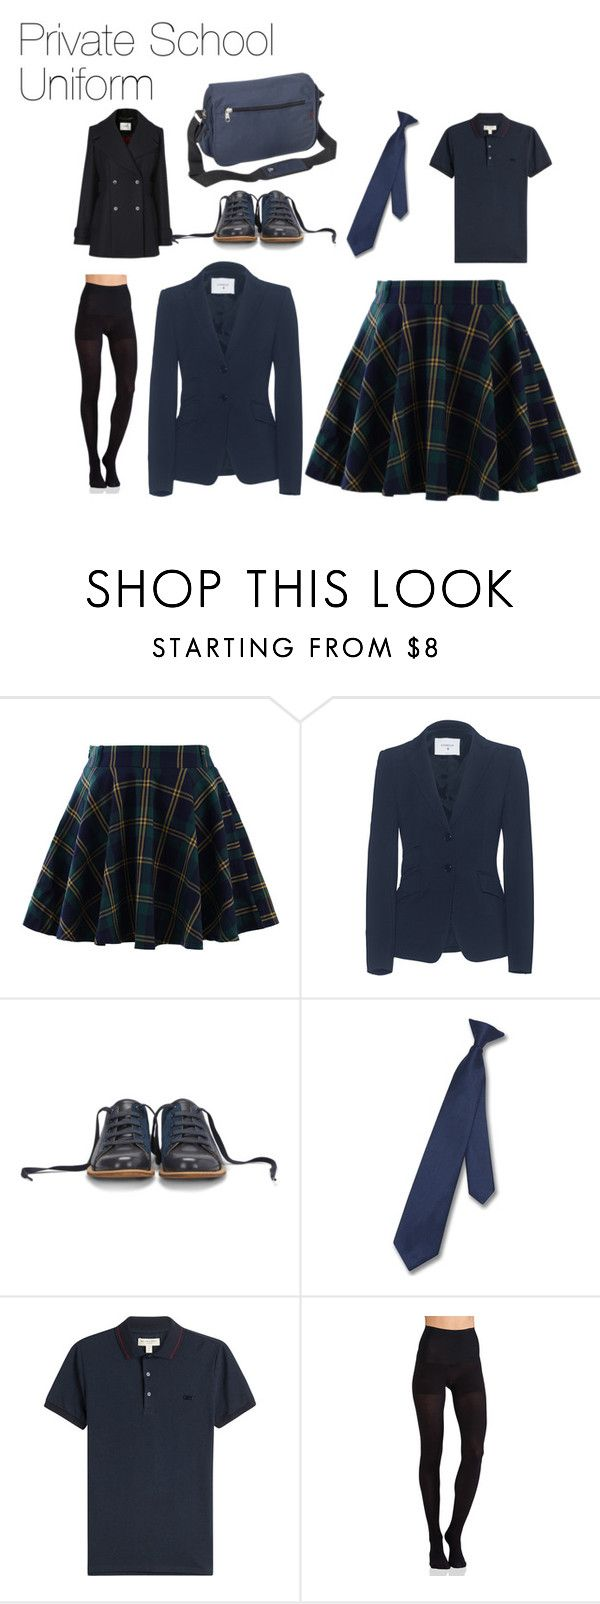 """Private School Uniform"" by katniss389 on Polyvore featuring Chicwish, Dondup, Bill Blass, Napoli, Burberry, Commando, L.K.Bennett and Everest"